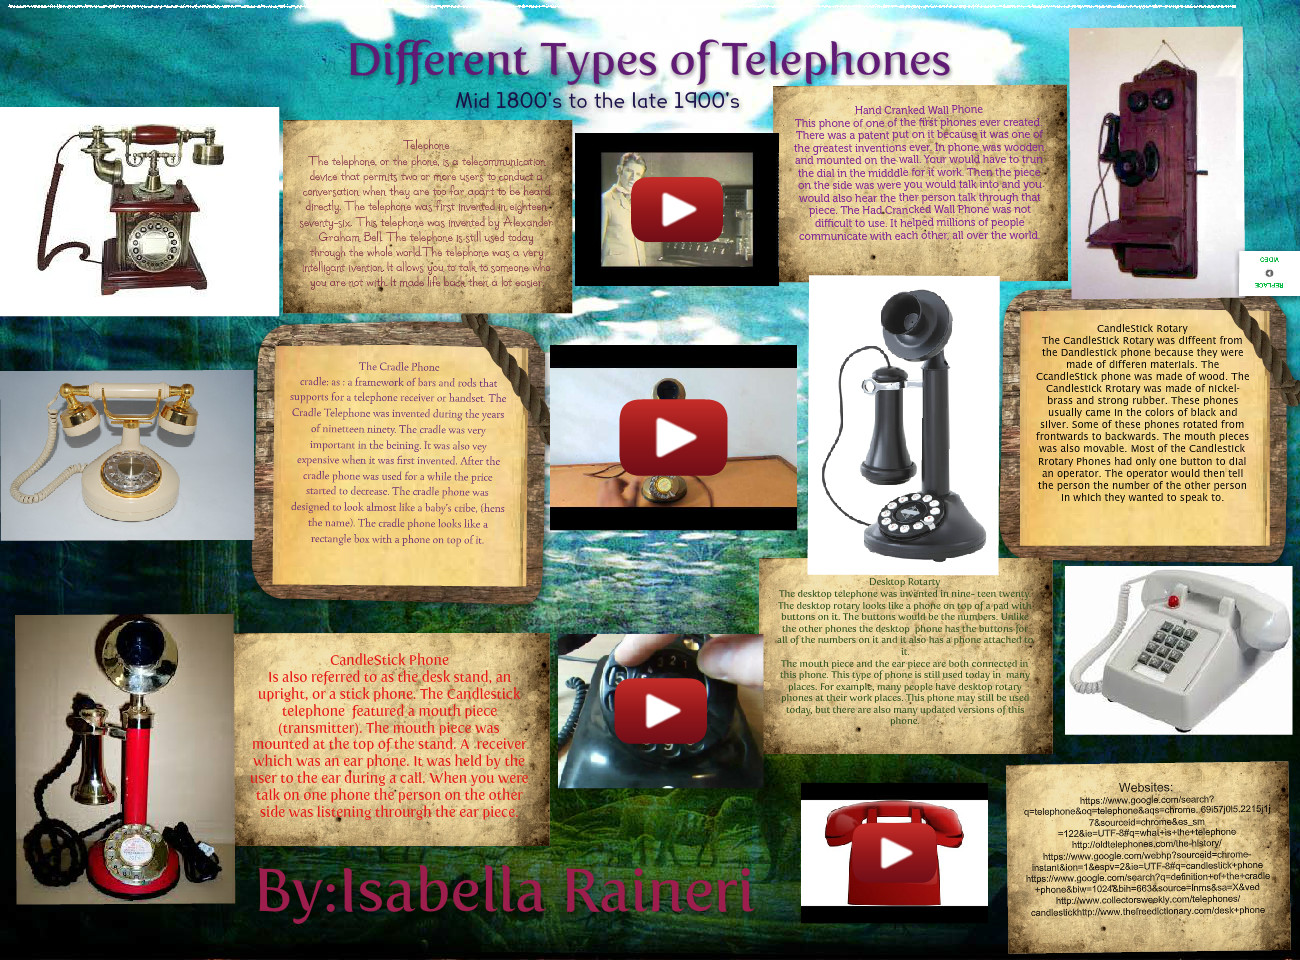 Different Types of Telephones